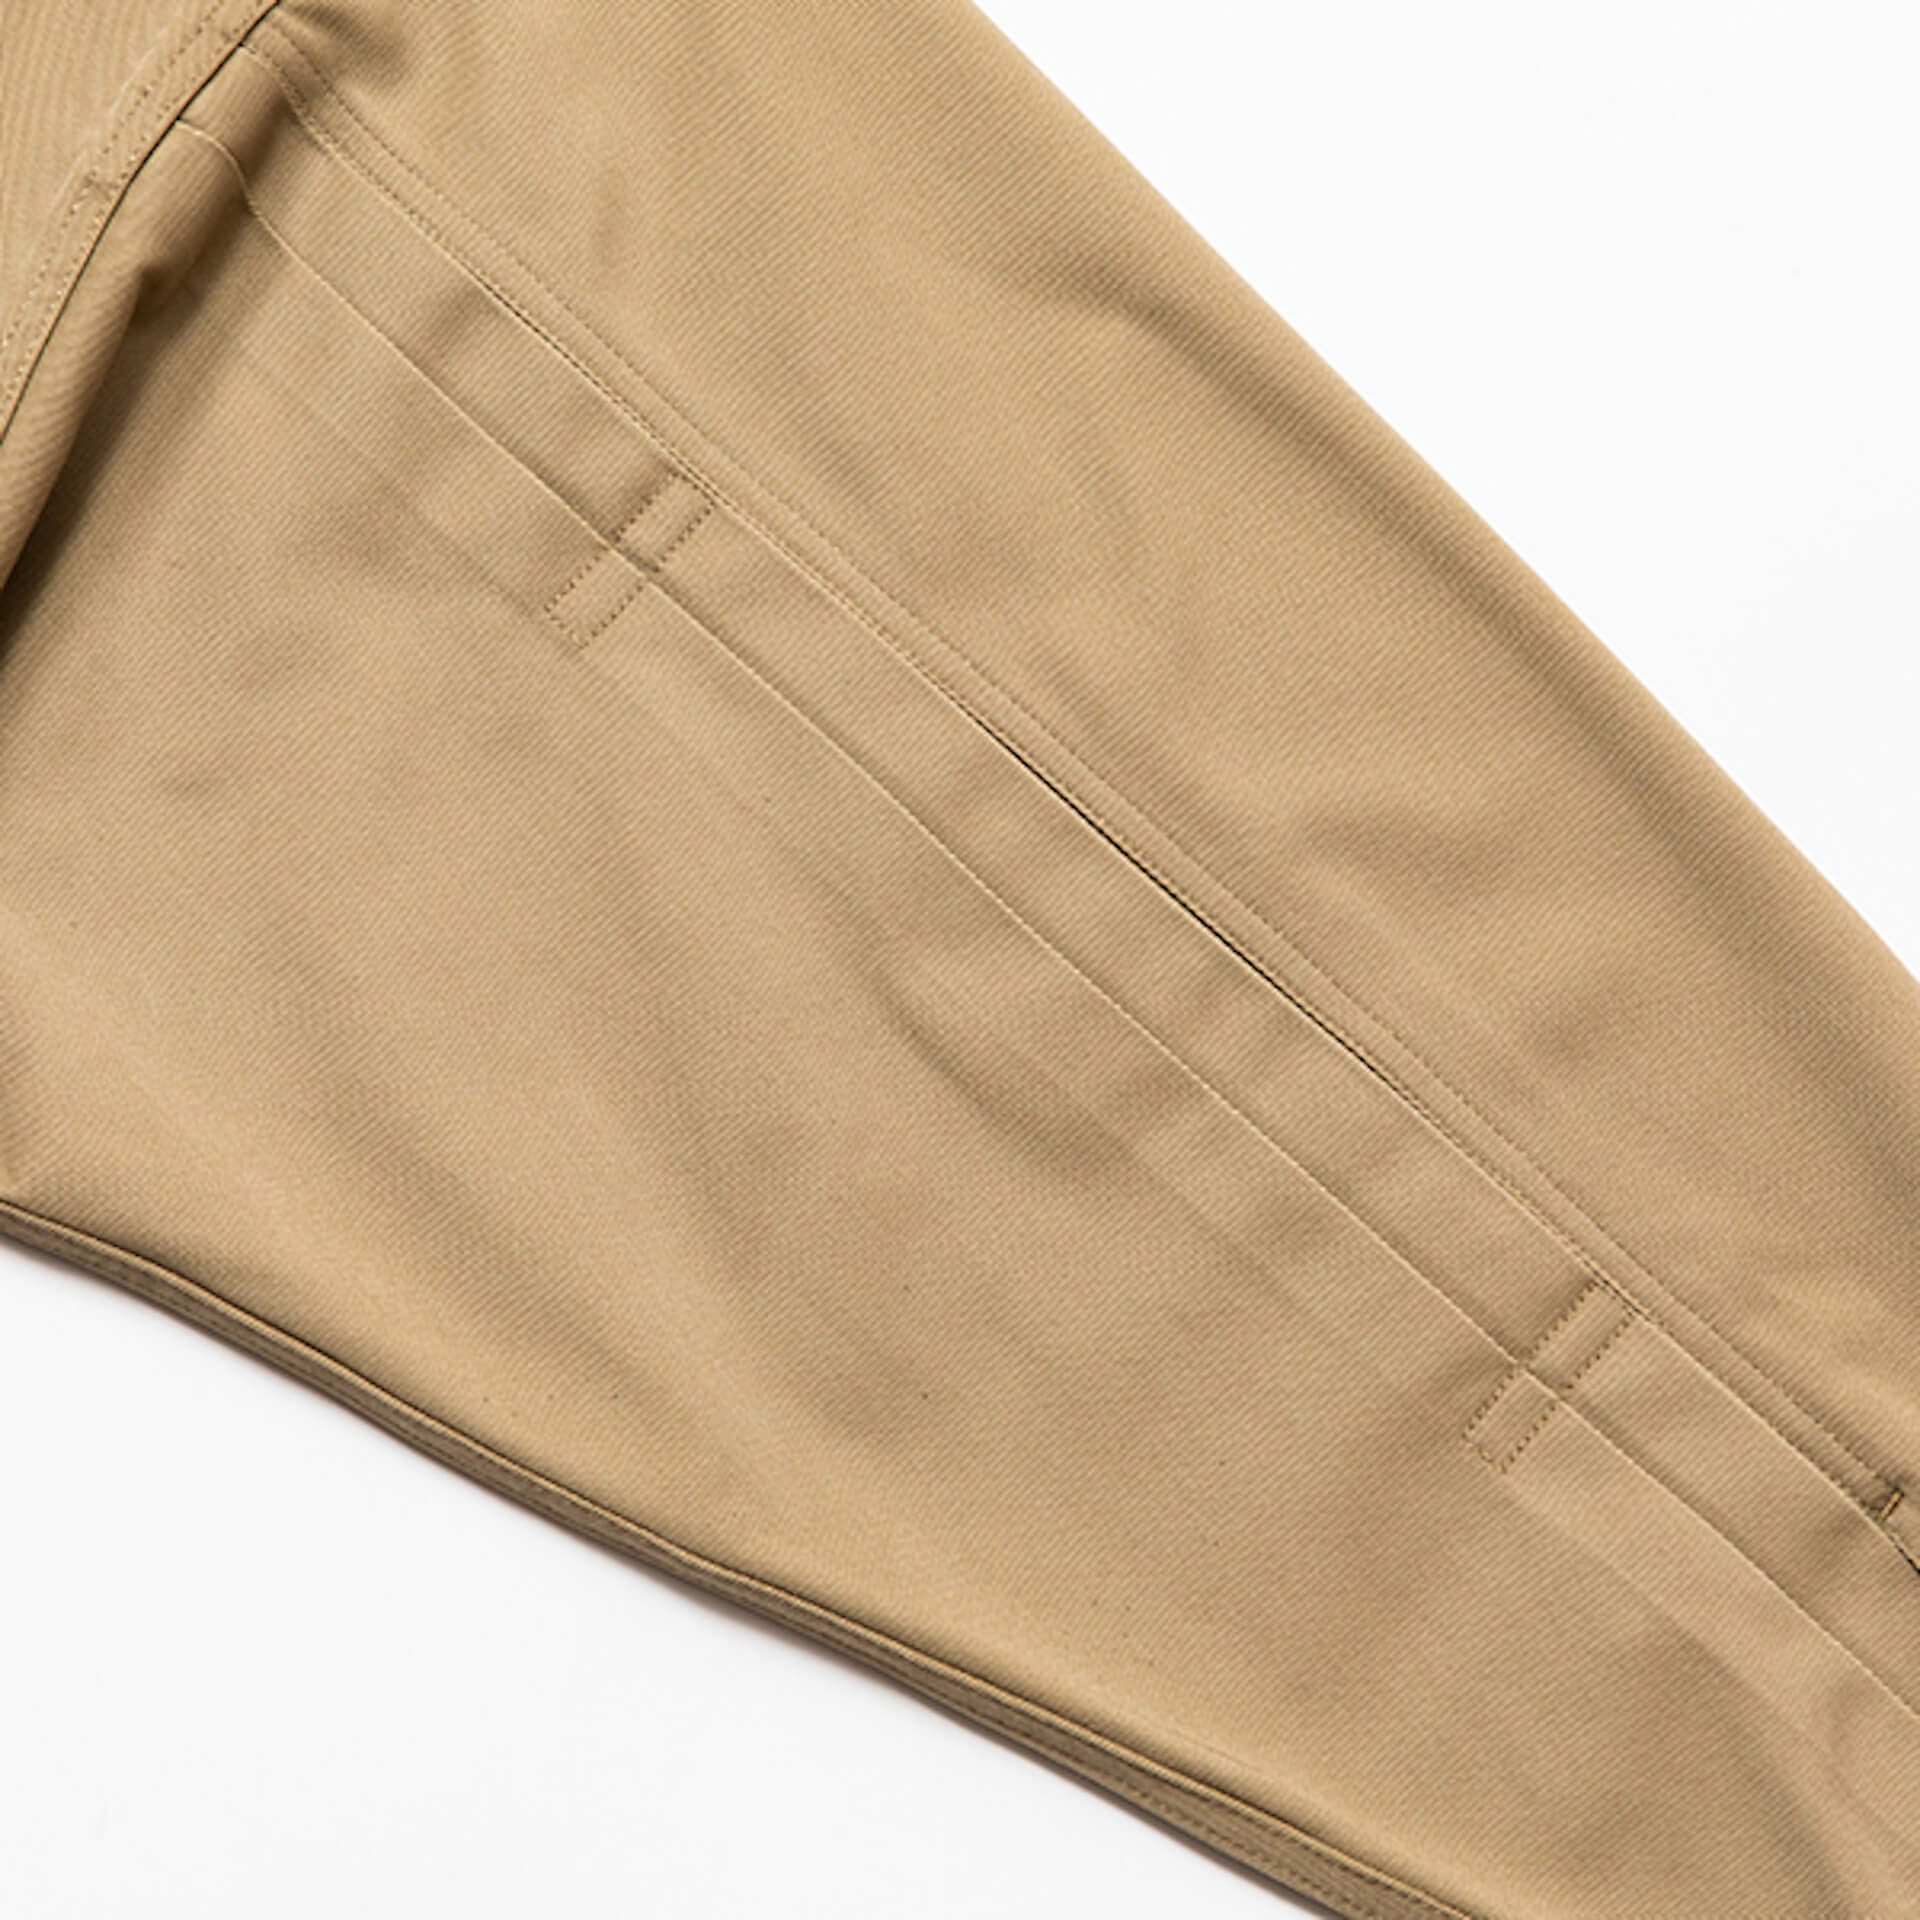 meanswhileとDickiesコラボ第2弾!定番素材を使用したセットアップが登場 lifefashion210901_meanswhile_7